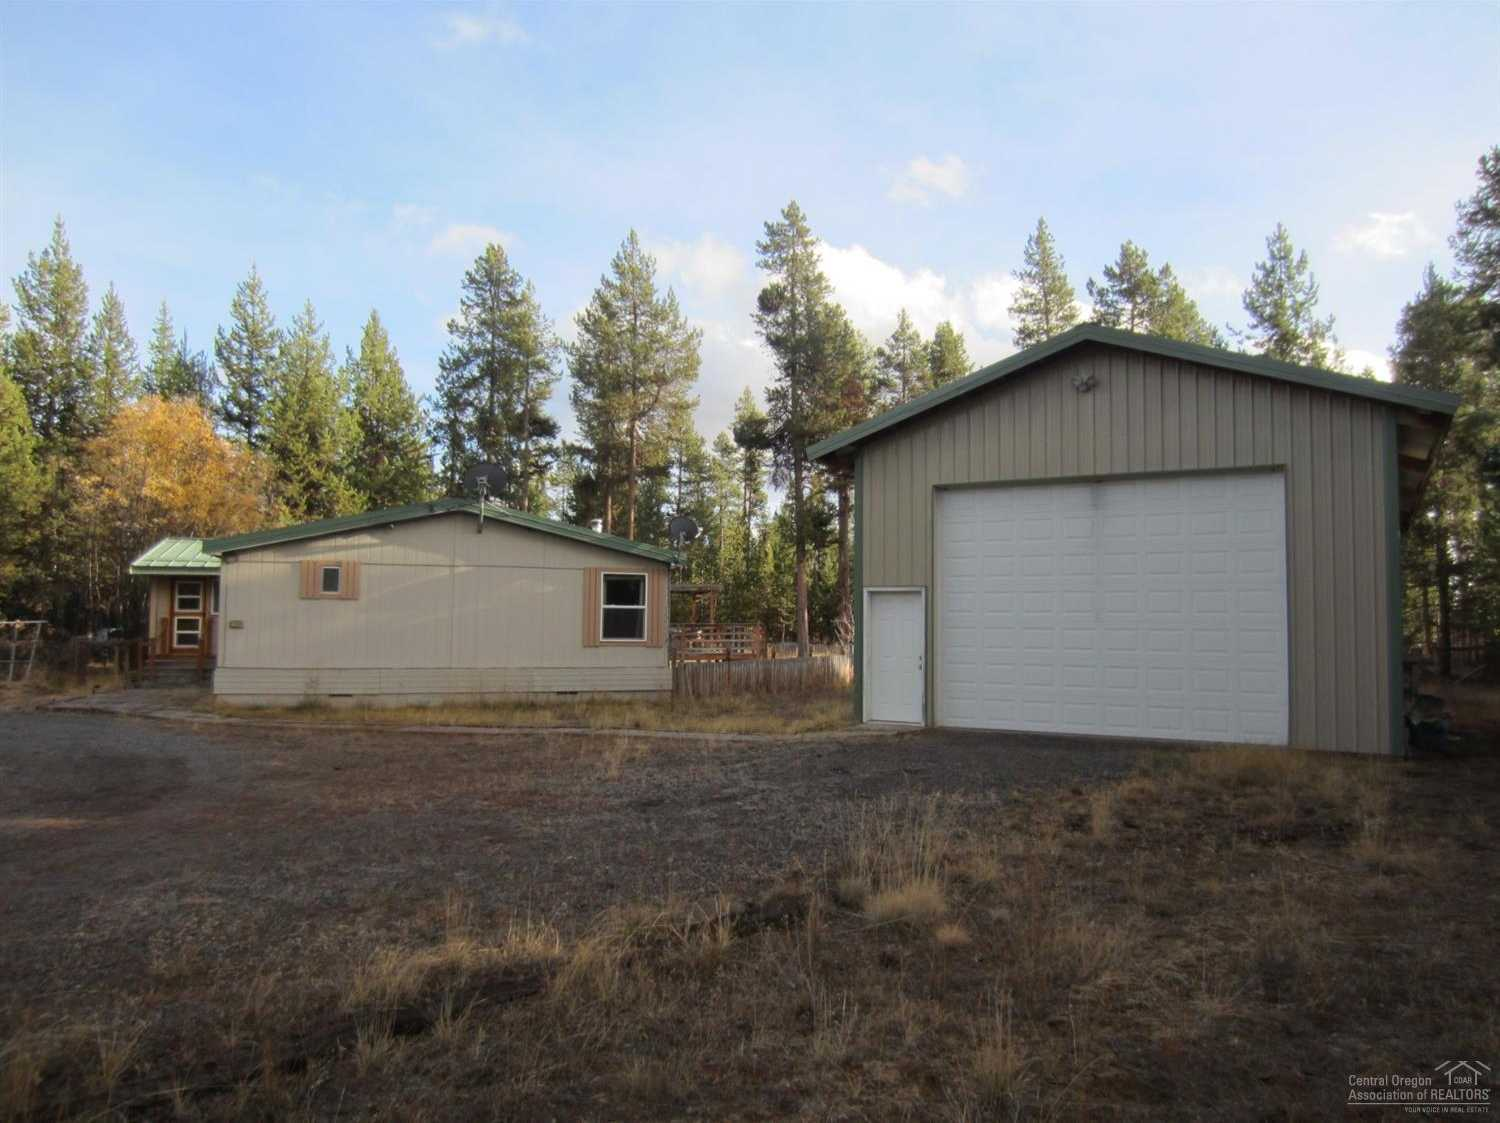 $195,000 - 3Br/2Ba -  for Sale in La Pine